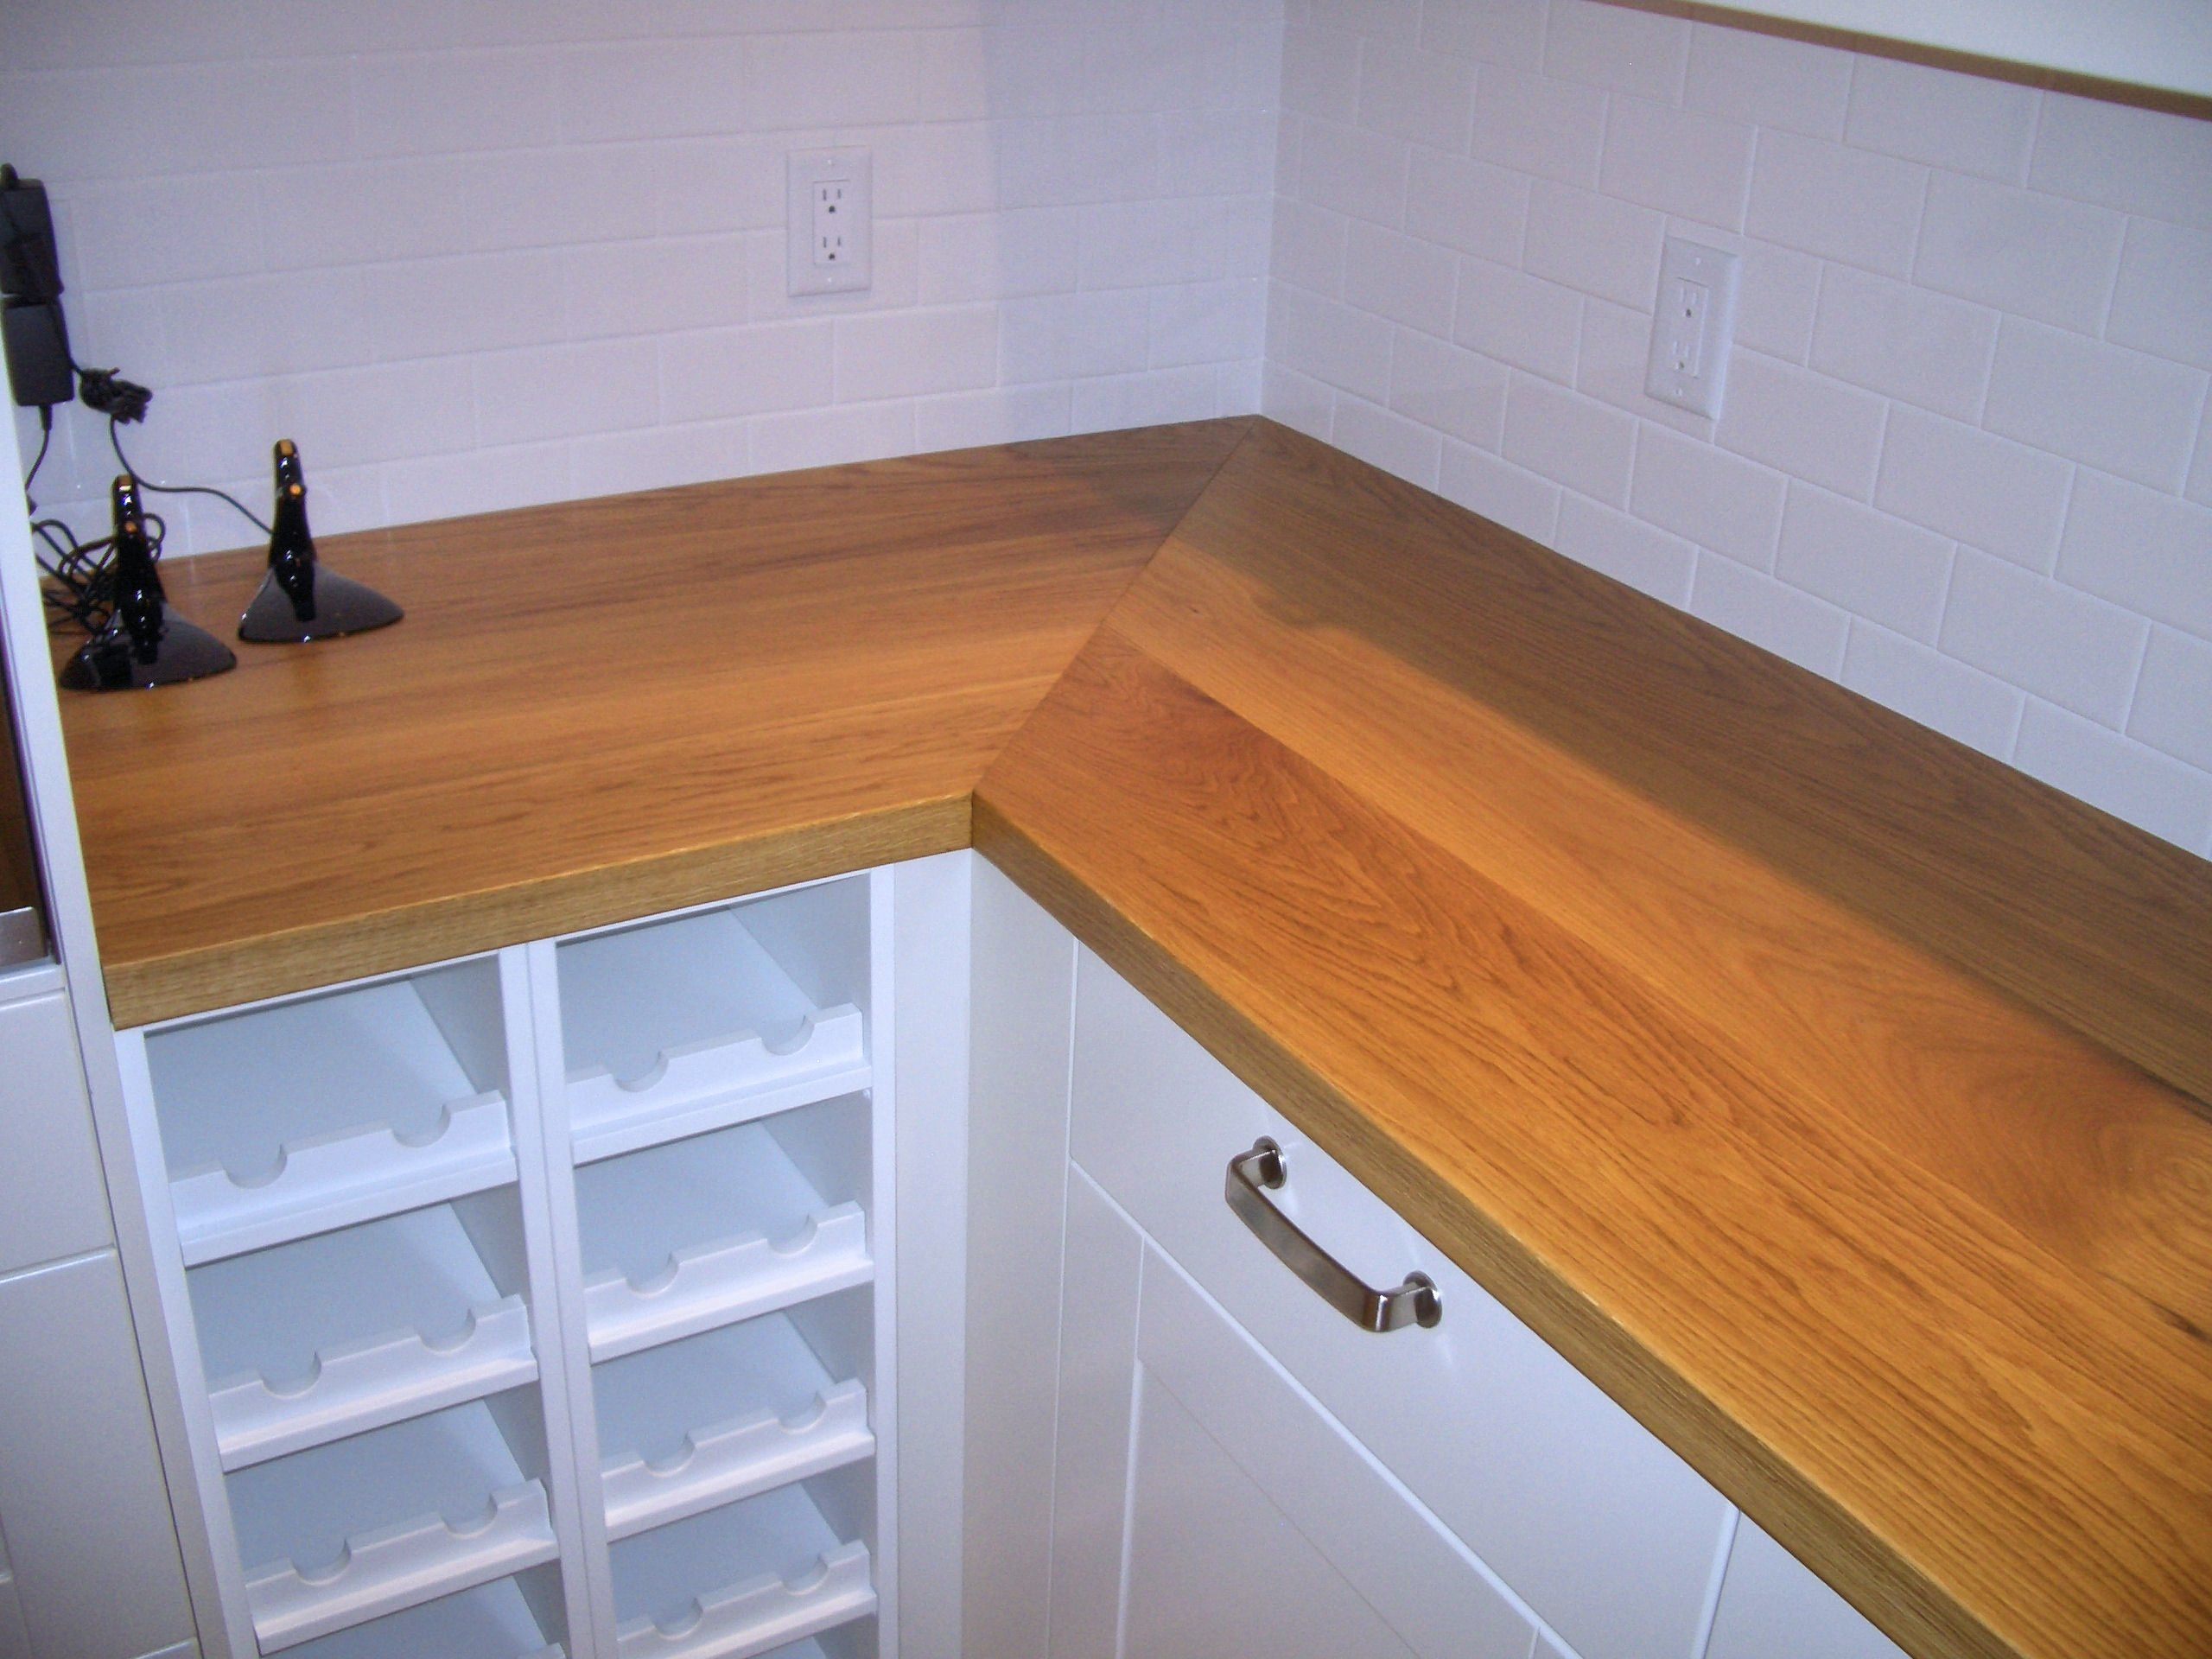 White Oak Face Grain Custom Wood Countertop.